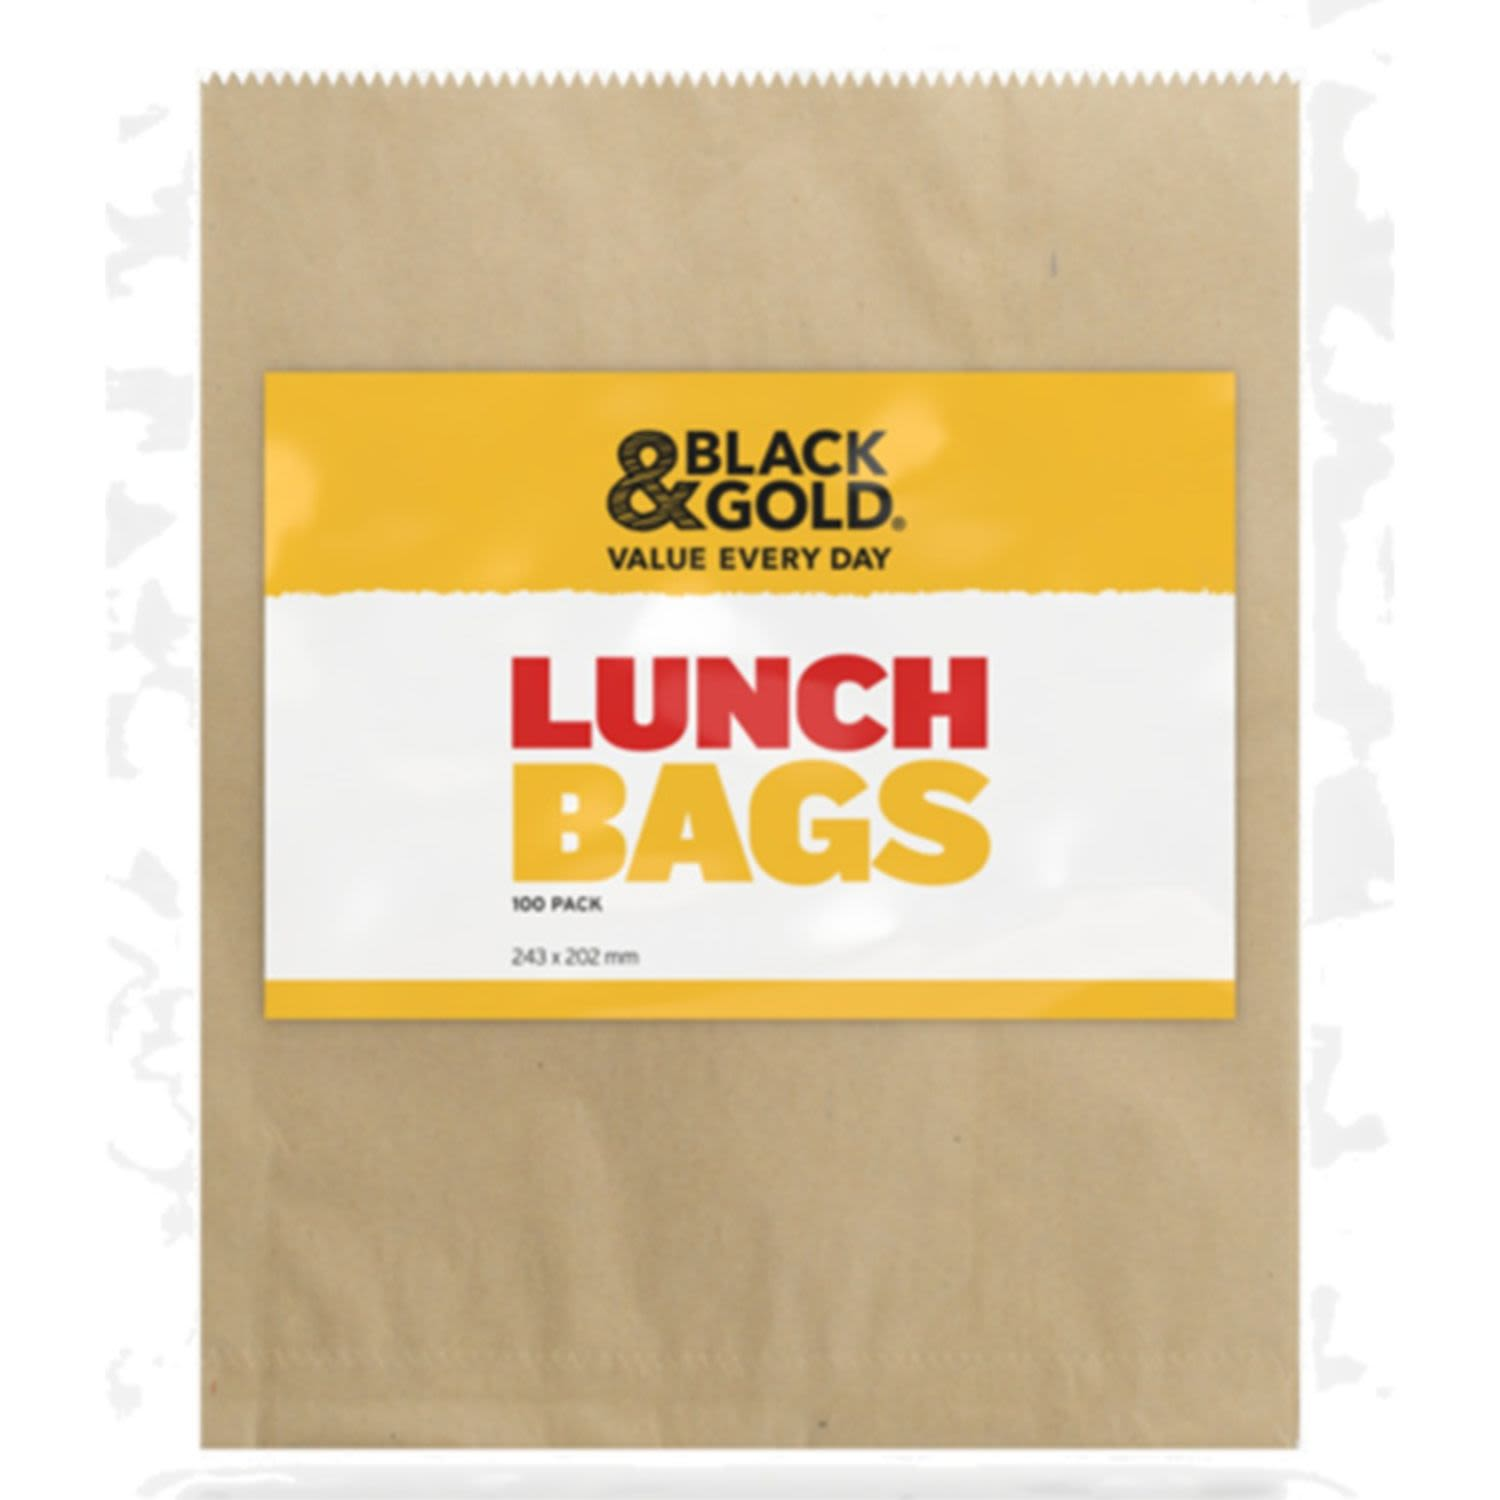 Black & Gold Lunch Bags, 100 Each